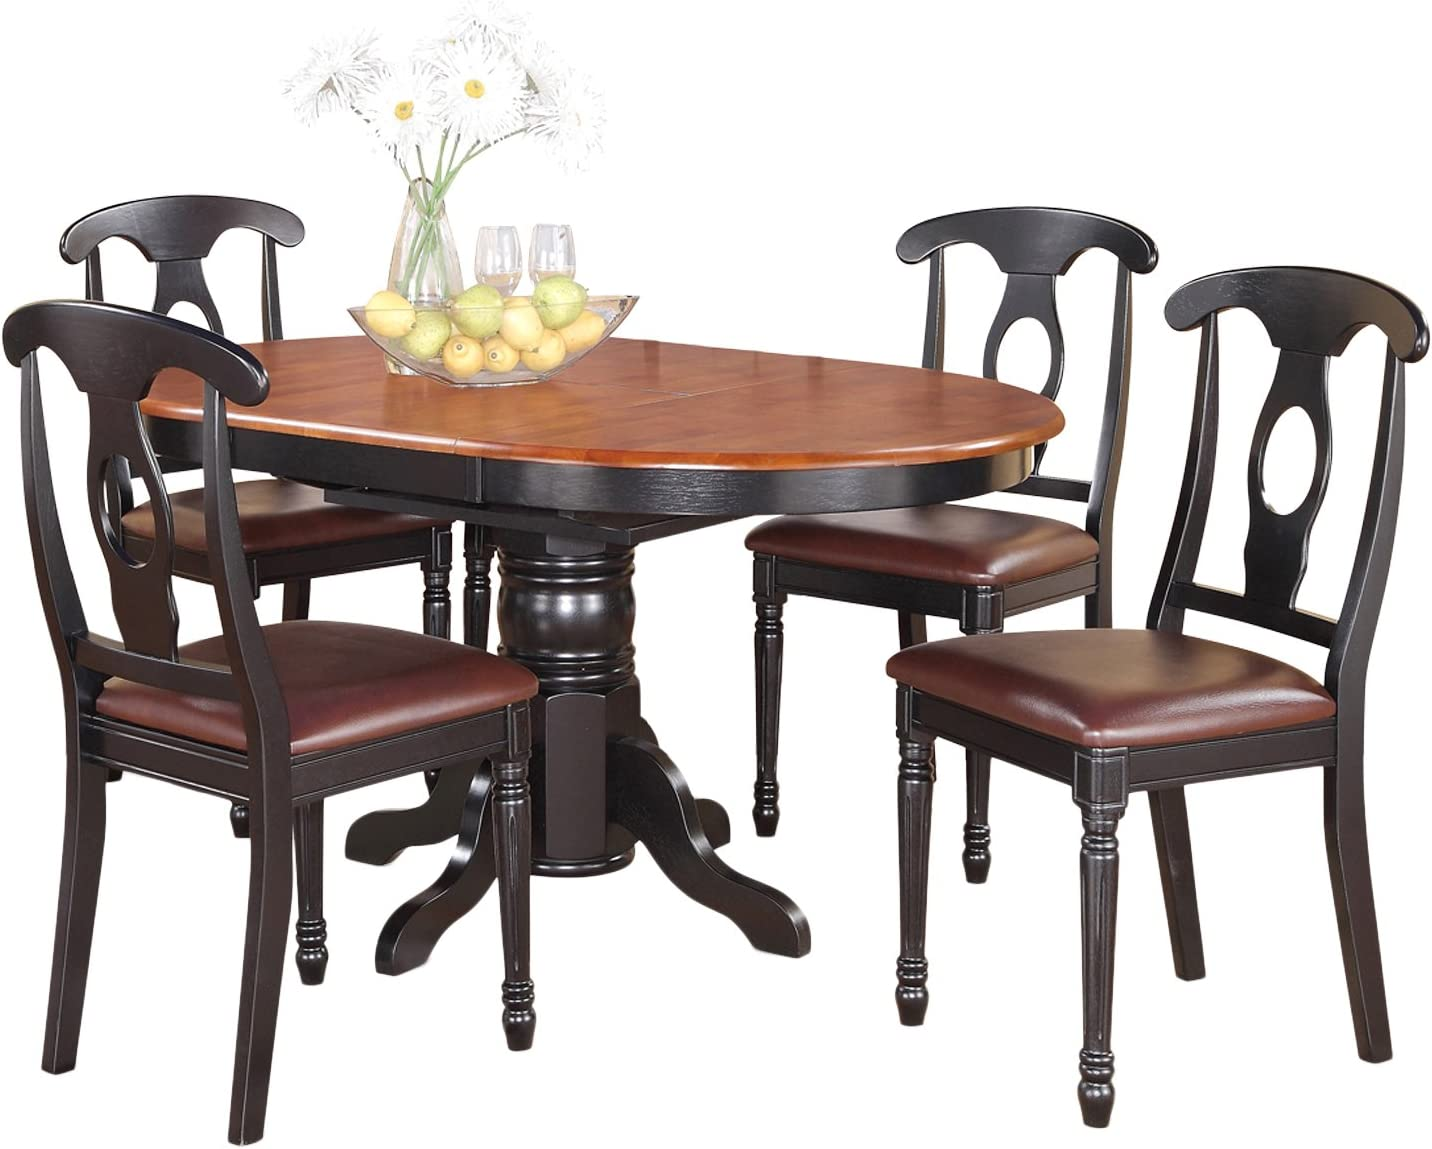 KENL5-BLK-LC 5 Pc Dining room set for 4-Oval Dining Table and 4 Dining Chairs.